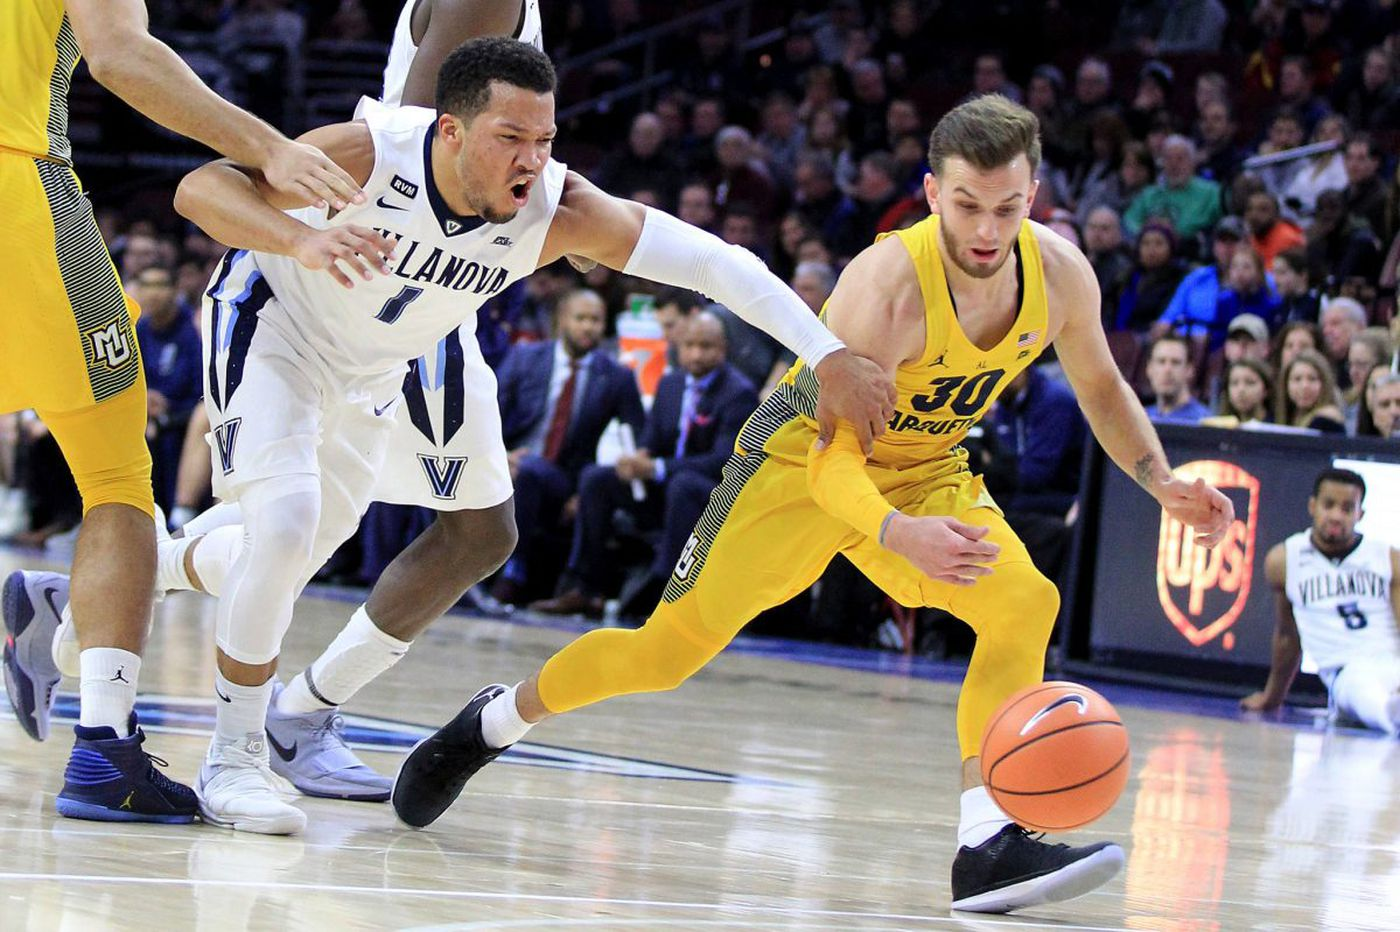 Villanova's rotation to be tested at Marquette because of Booth's injury